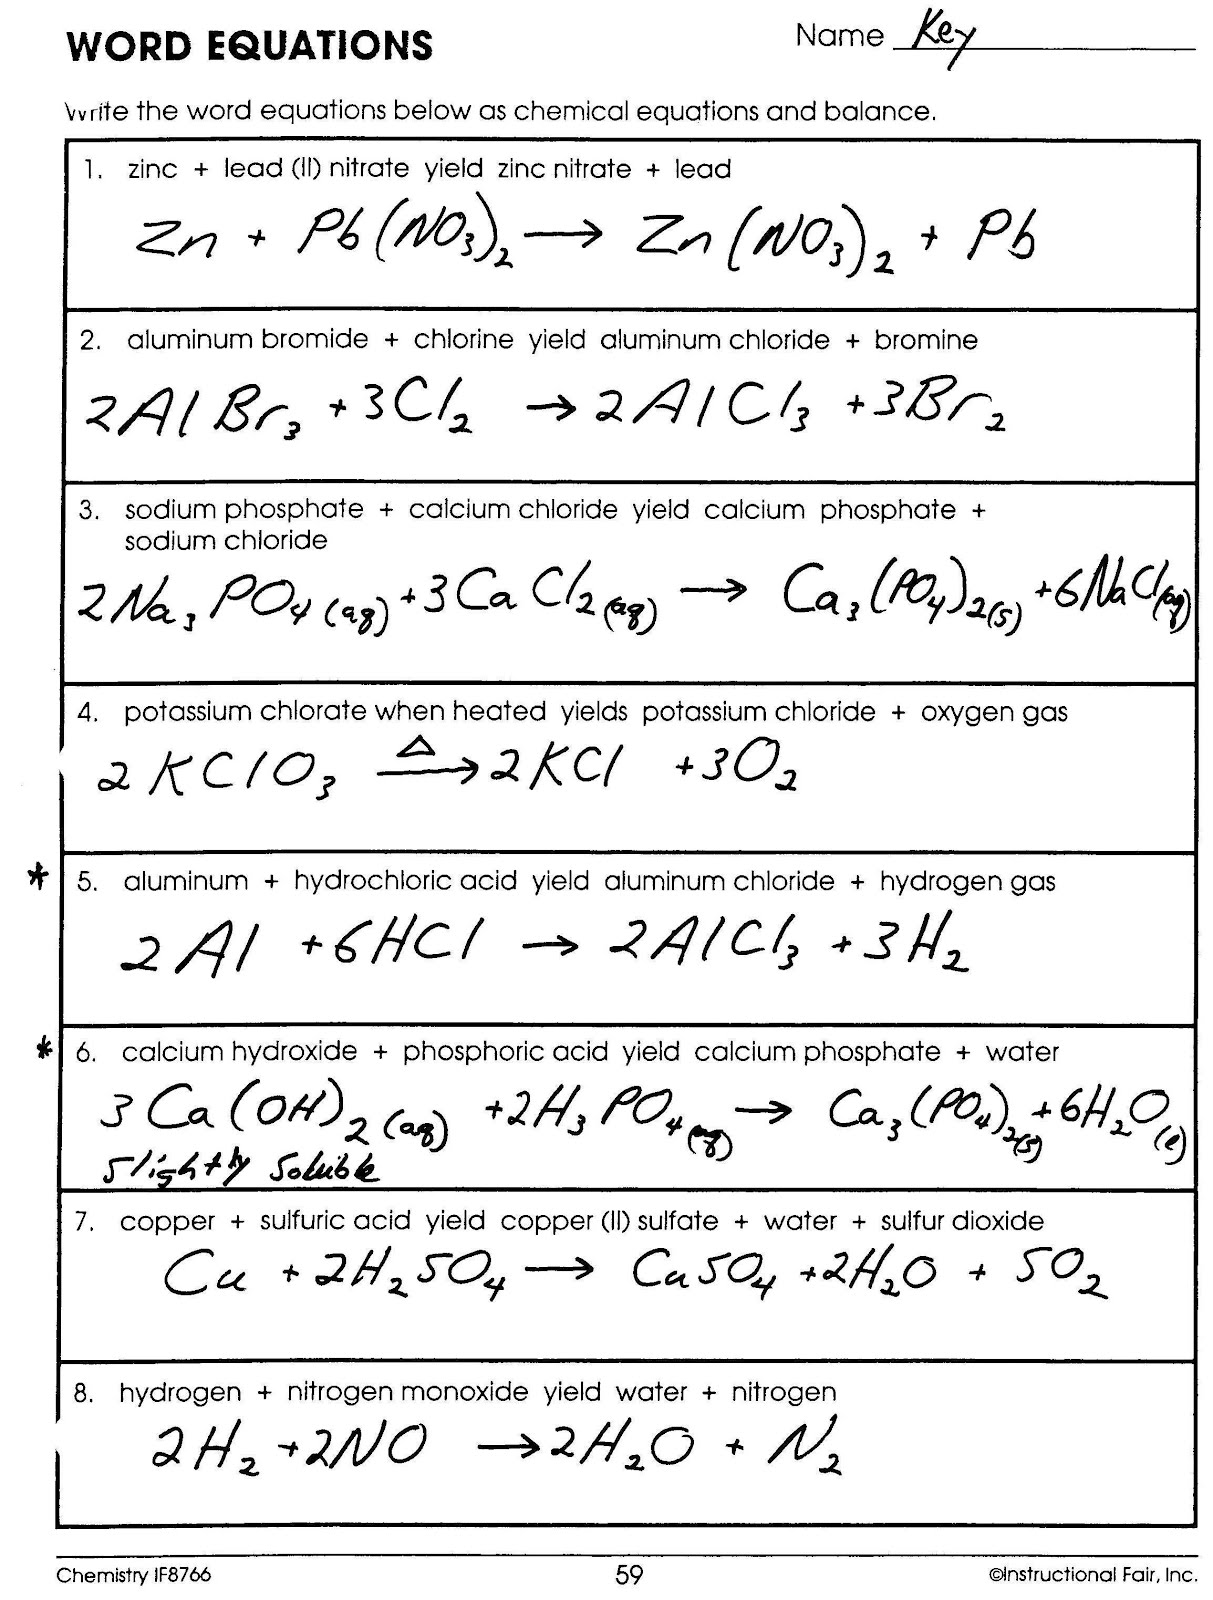 Chemical Word Equations Worksheet Worksheets for all | Download ...